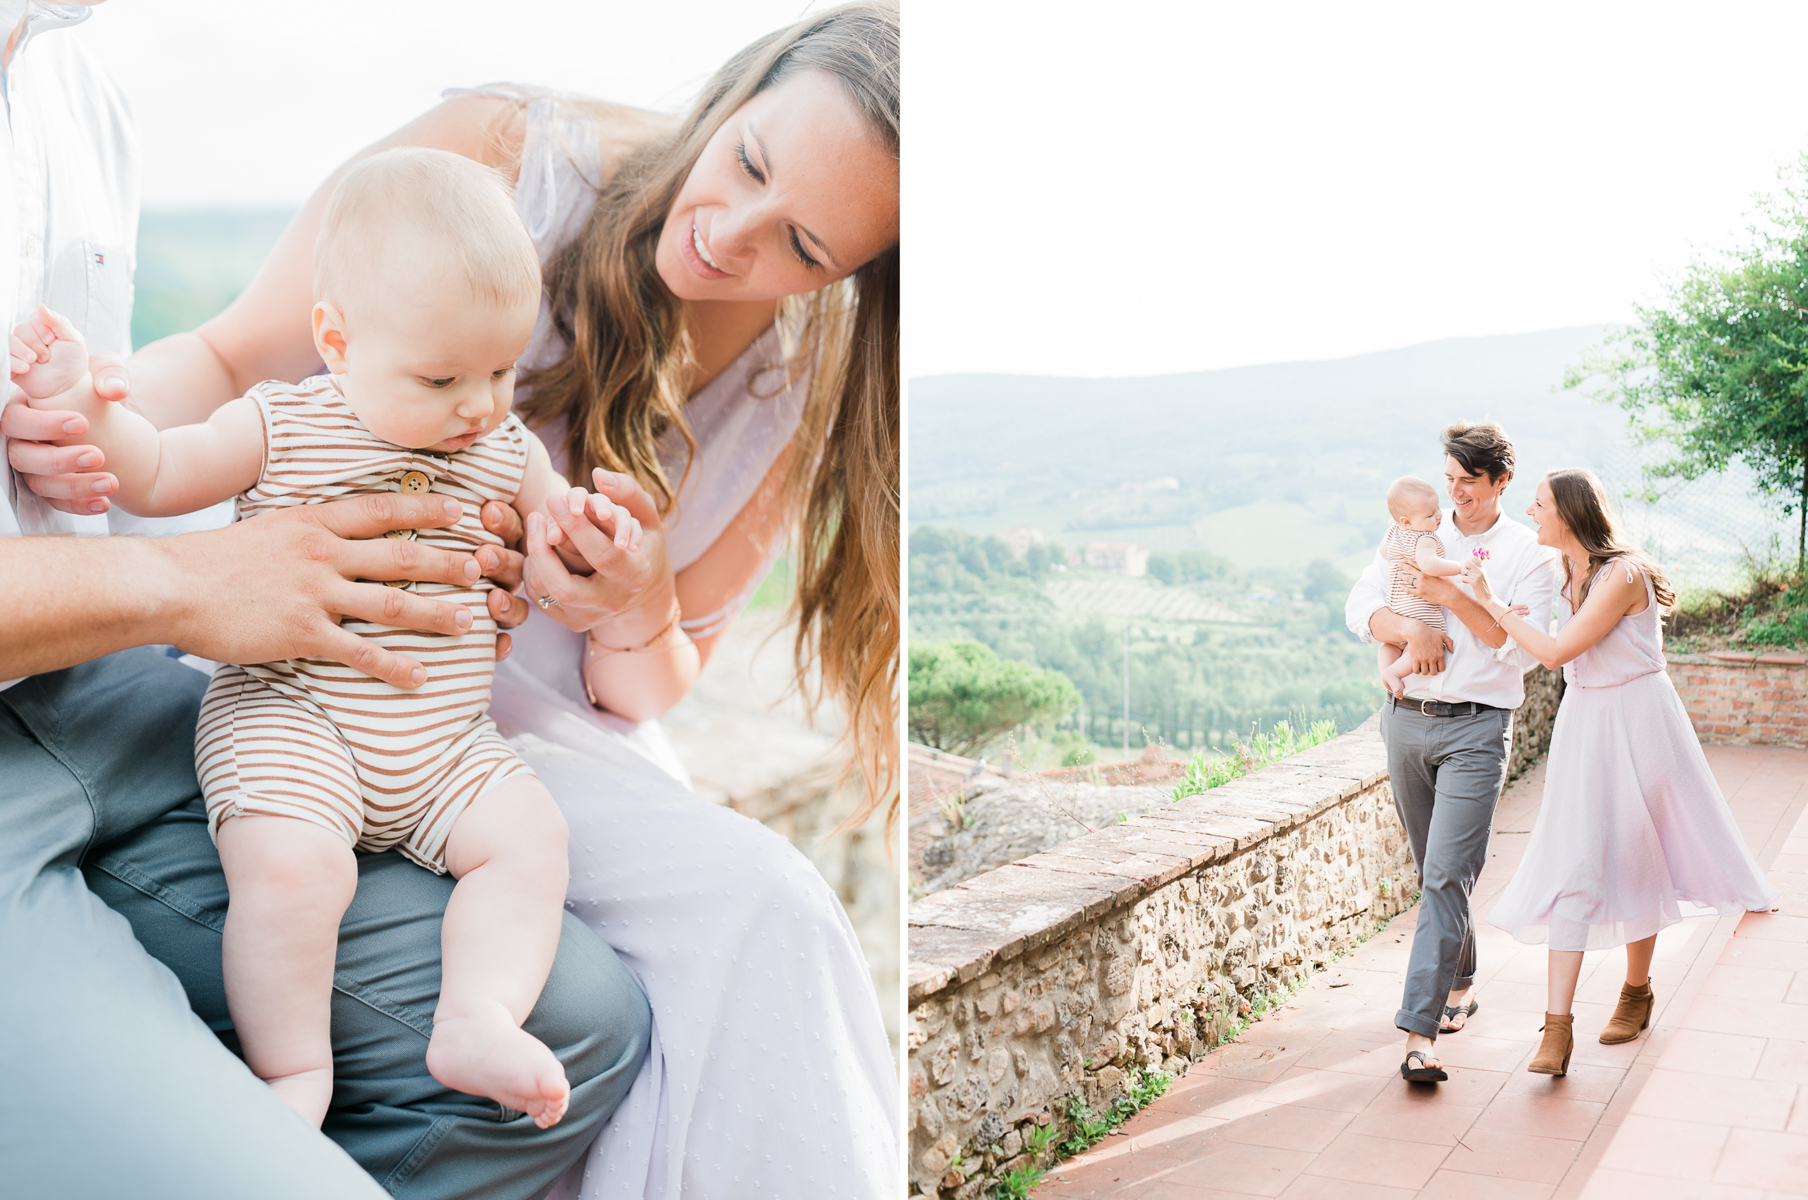 AKP_San_Gimignano_Tuscany_family_shoot_wedding_engagement_photographer-14.jpg